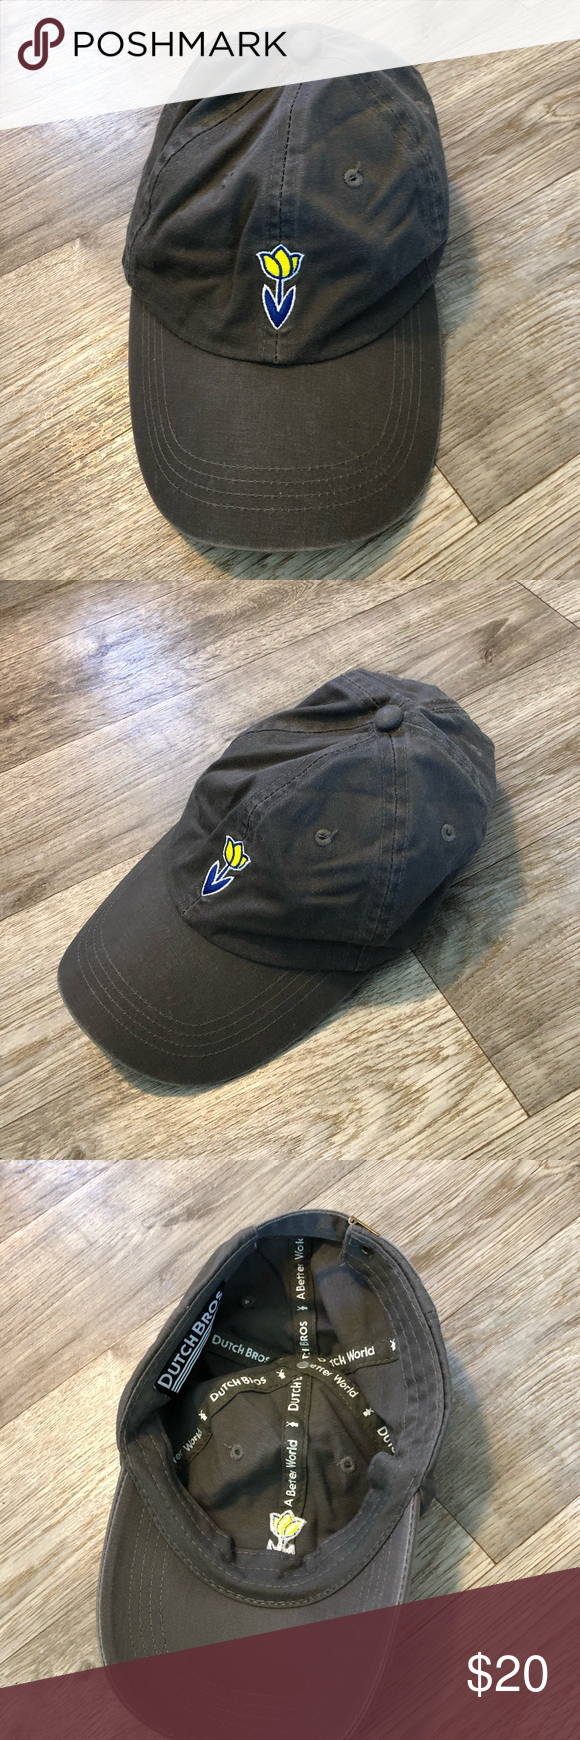 dutch bros tulip dad hat dutch bros tulip dad hat  Size: Adjustable   Good preloved condition. Barely worn   Bundle fav items for a personal discount. Offers are always welcome, too! No trades. Thank you! (60) Dutch Bros Accessories Hats #dutchbros